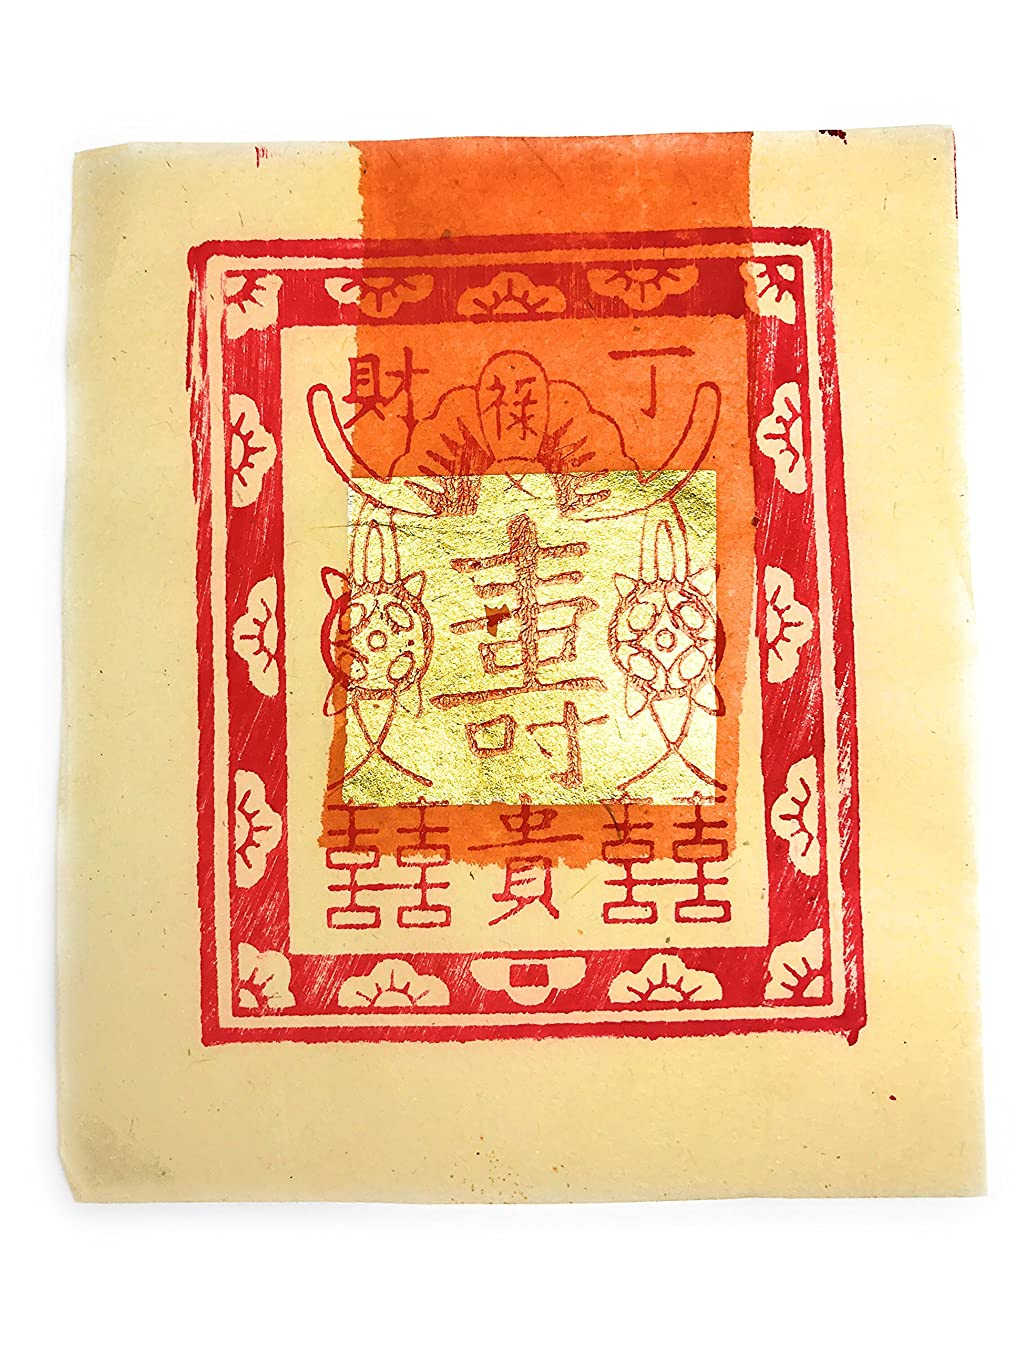 Chinese / Vietnamese Joss Paper Gold Foil Red & Orange Chinese Long Life Blessing (Longevity) Pack of 100